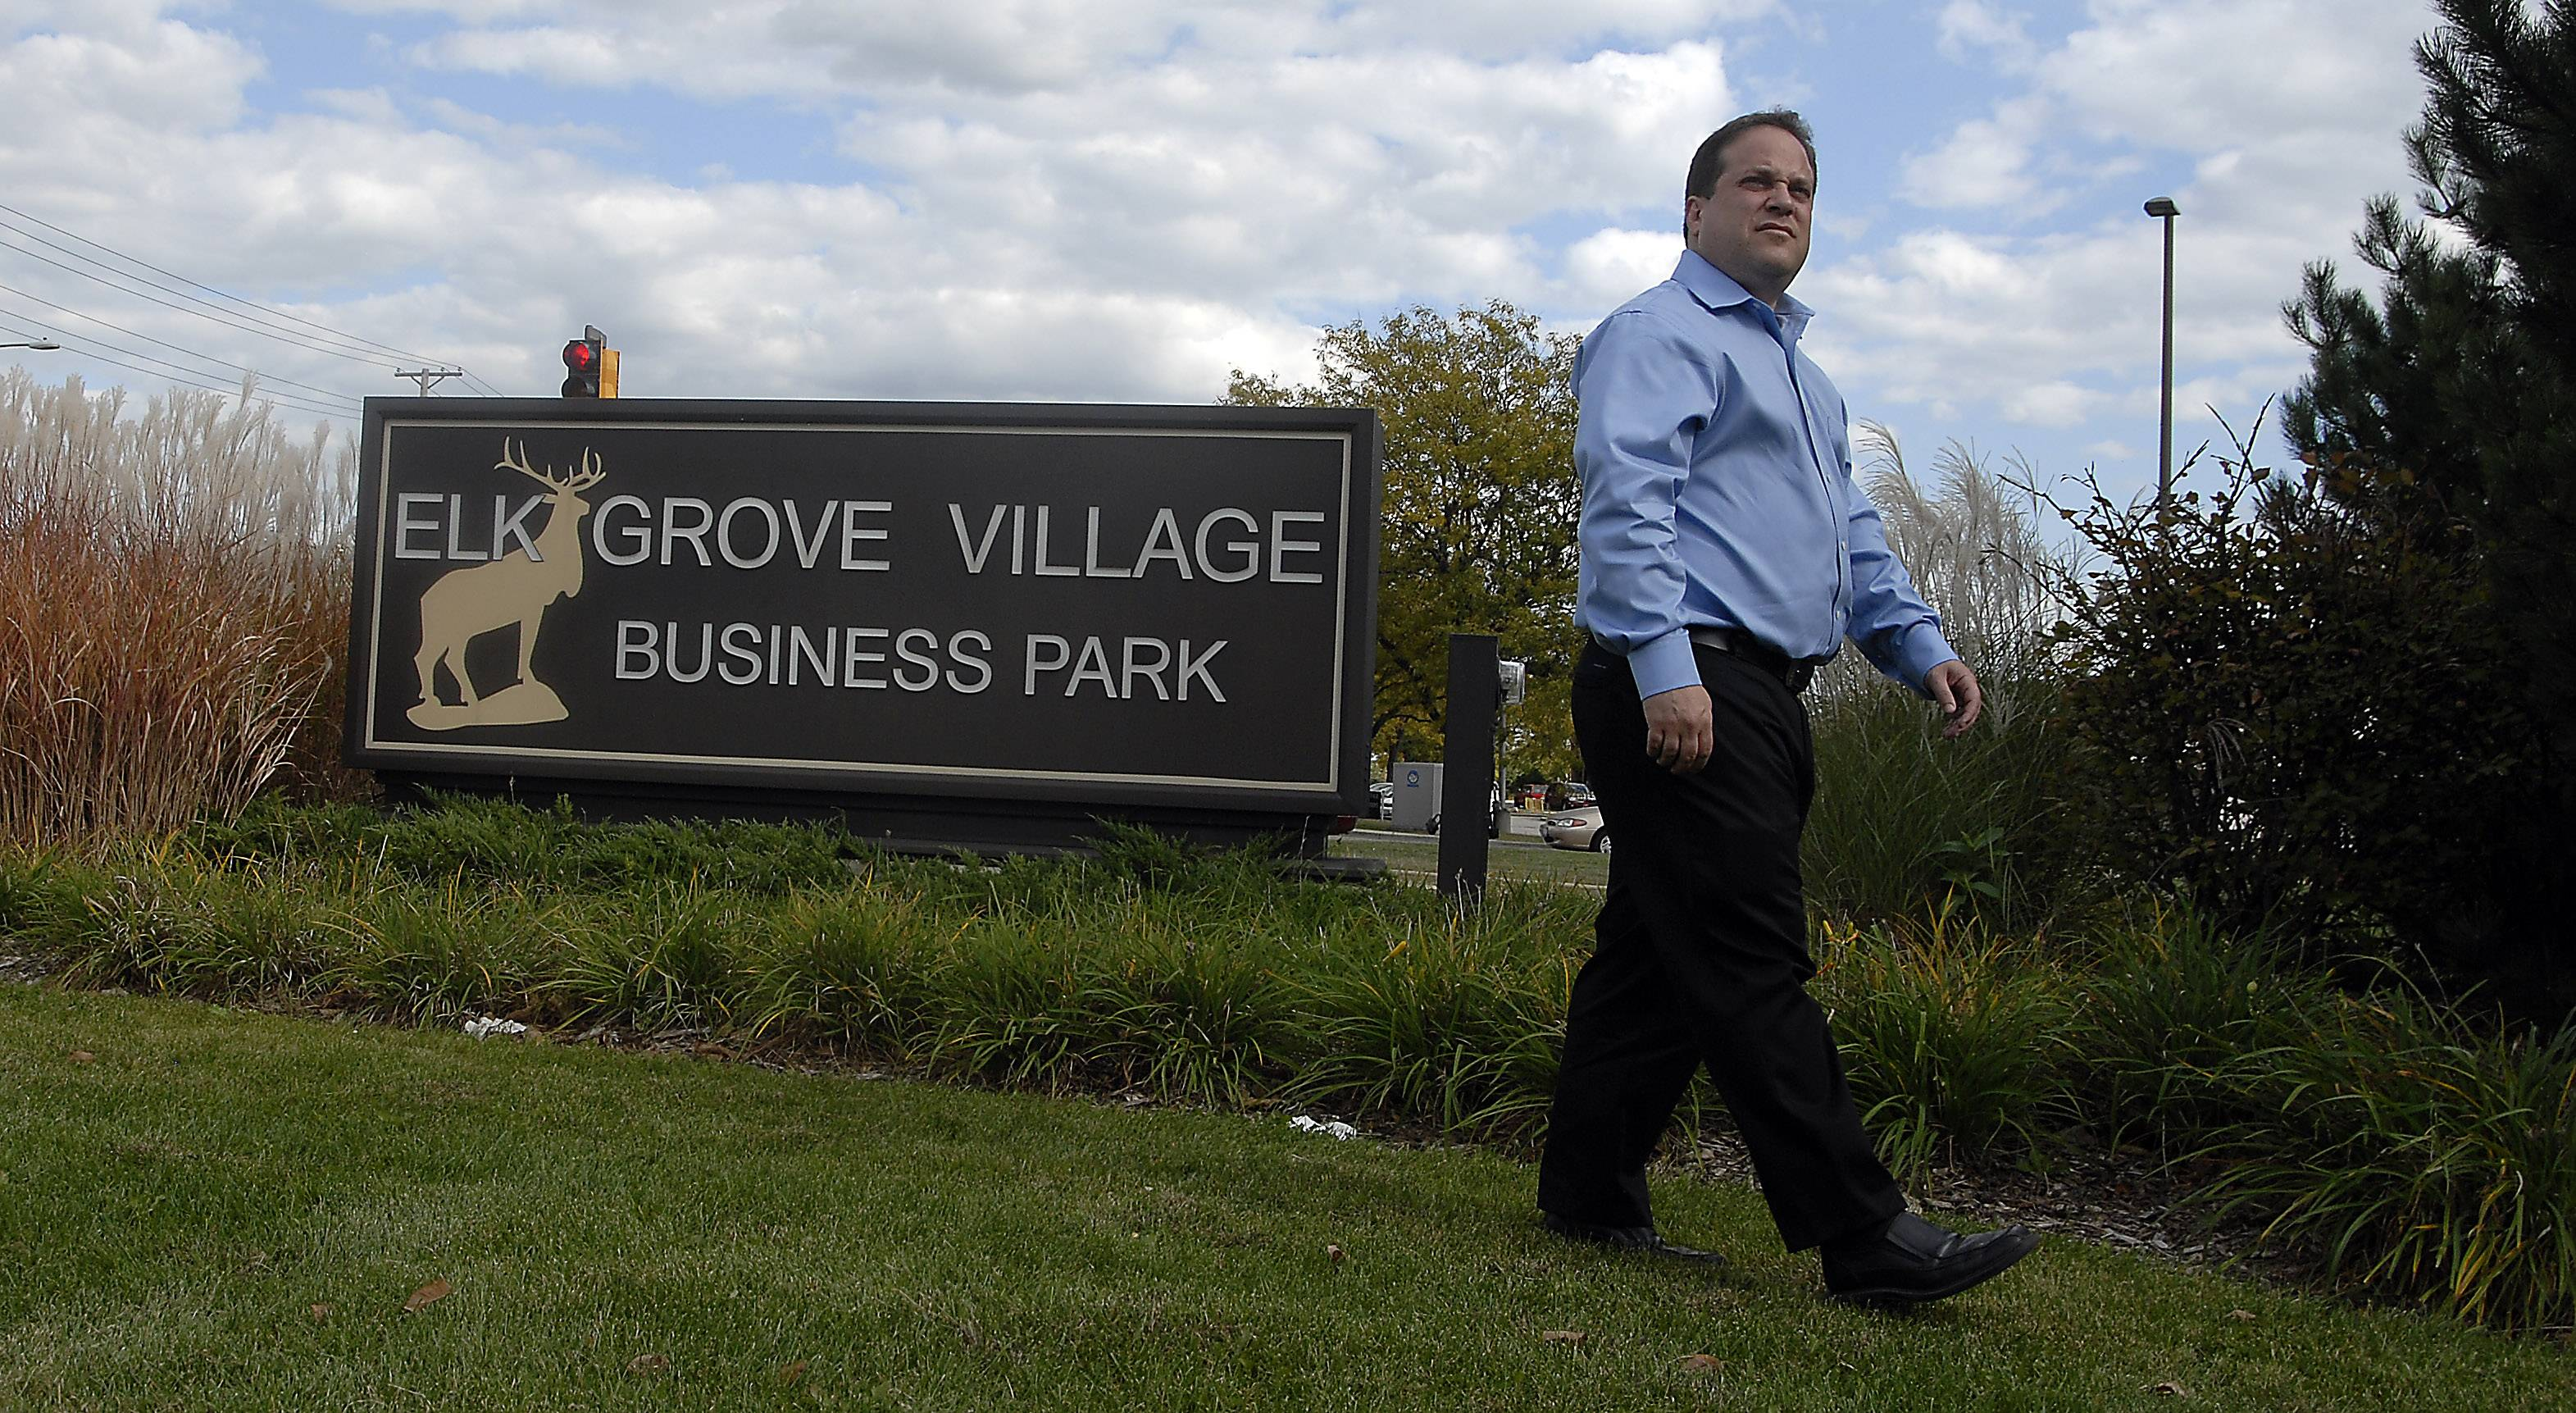 Josh Grodzin, director of business development and marketing of Elk Grove Village, walks near the industrial park in this 2010 photo.